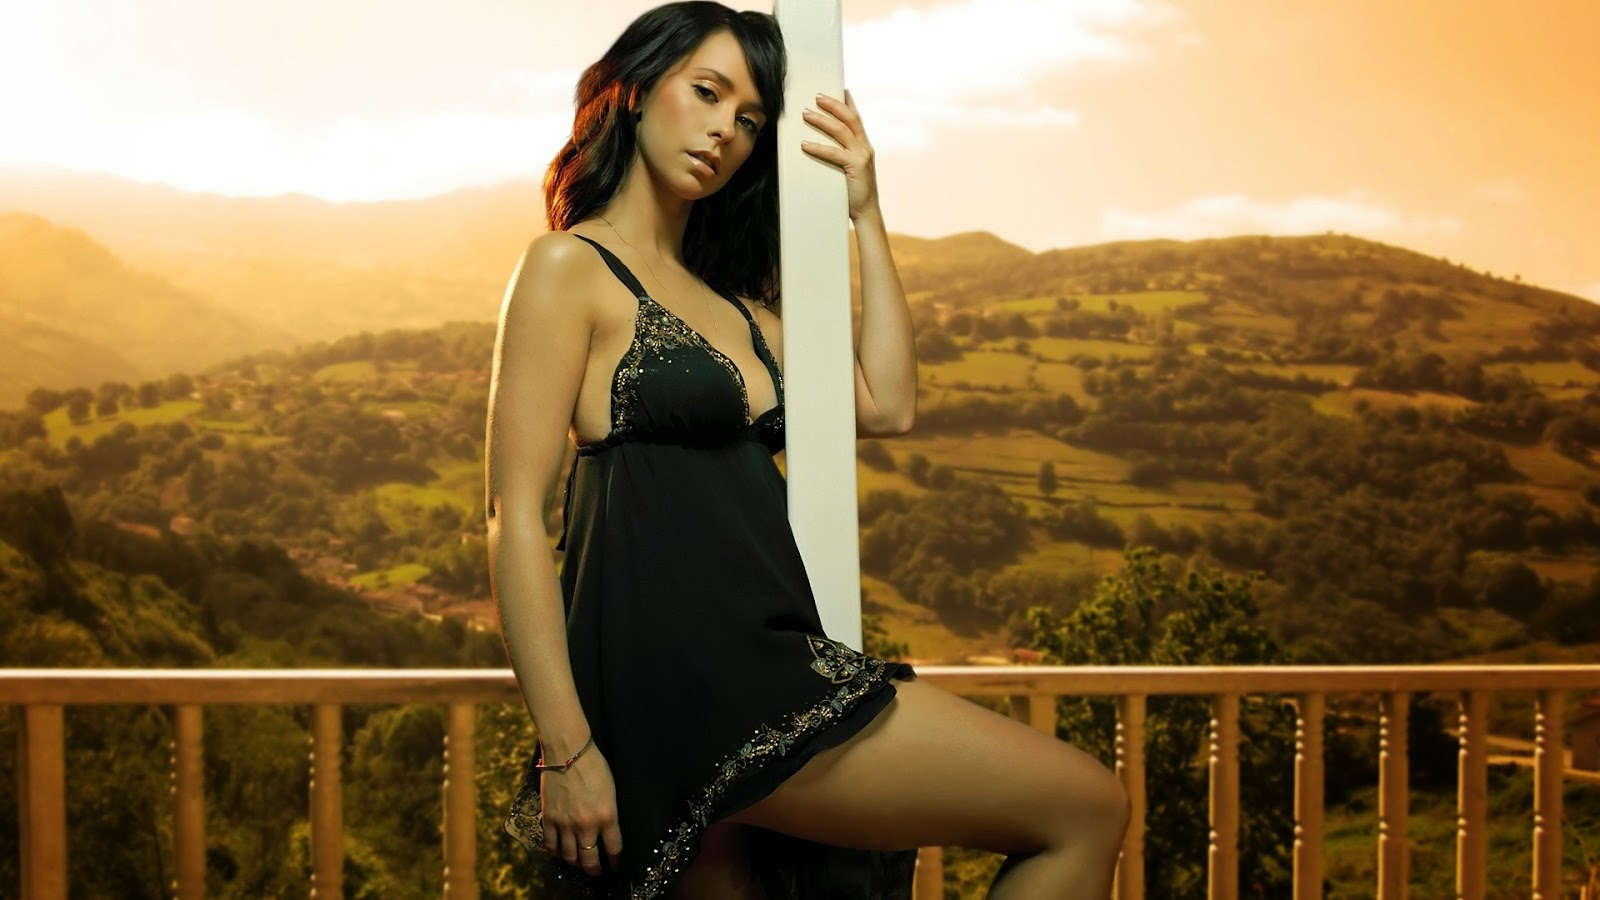 Jennifer-Love-Hewitt-images-Photoshoot-and-background-wallpaper-wpc9206441